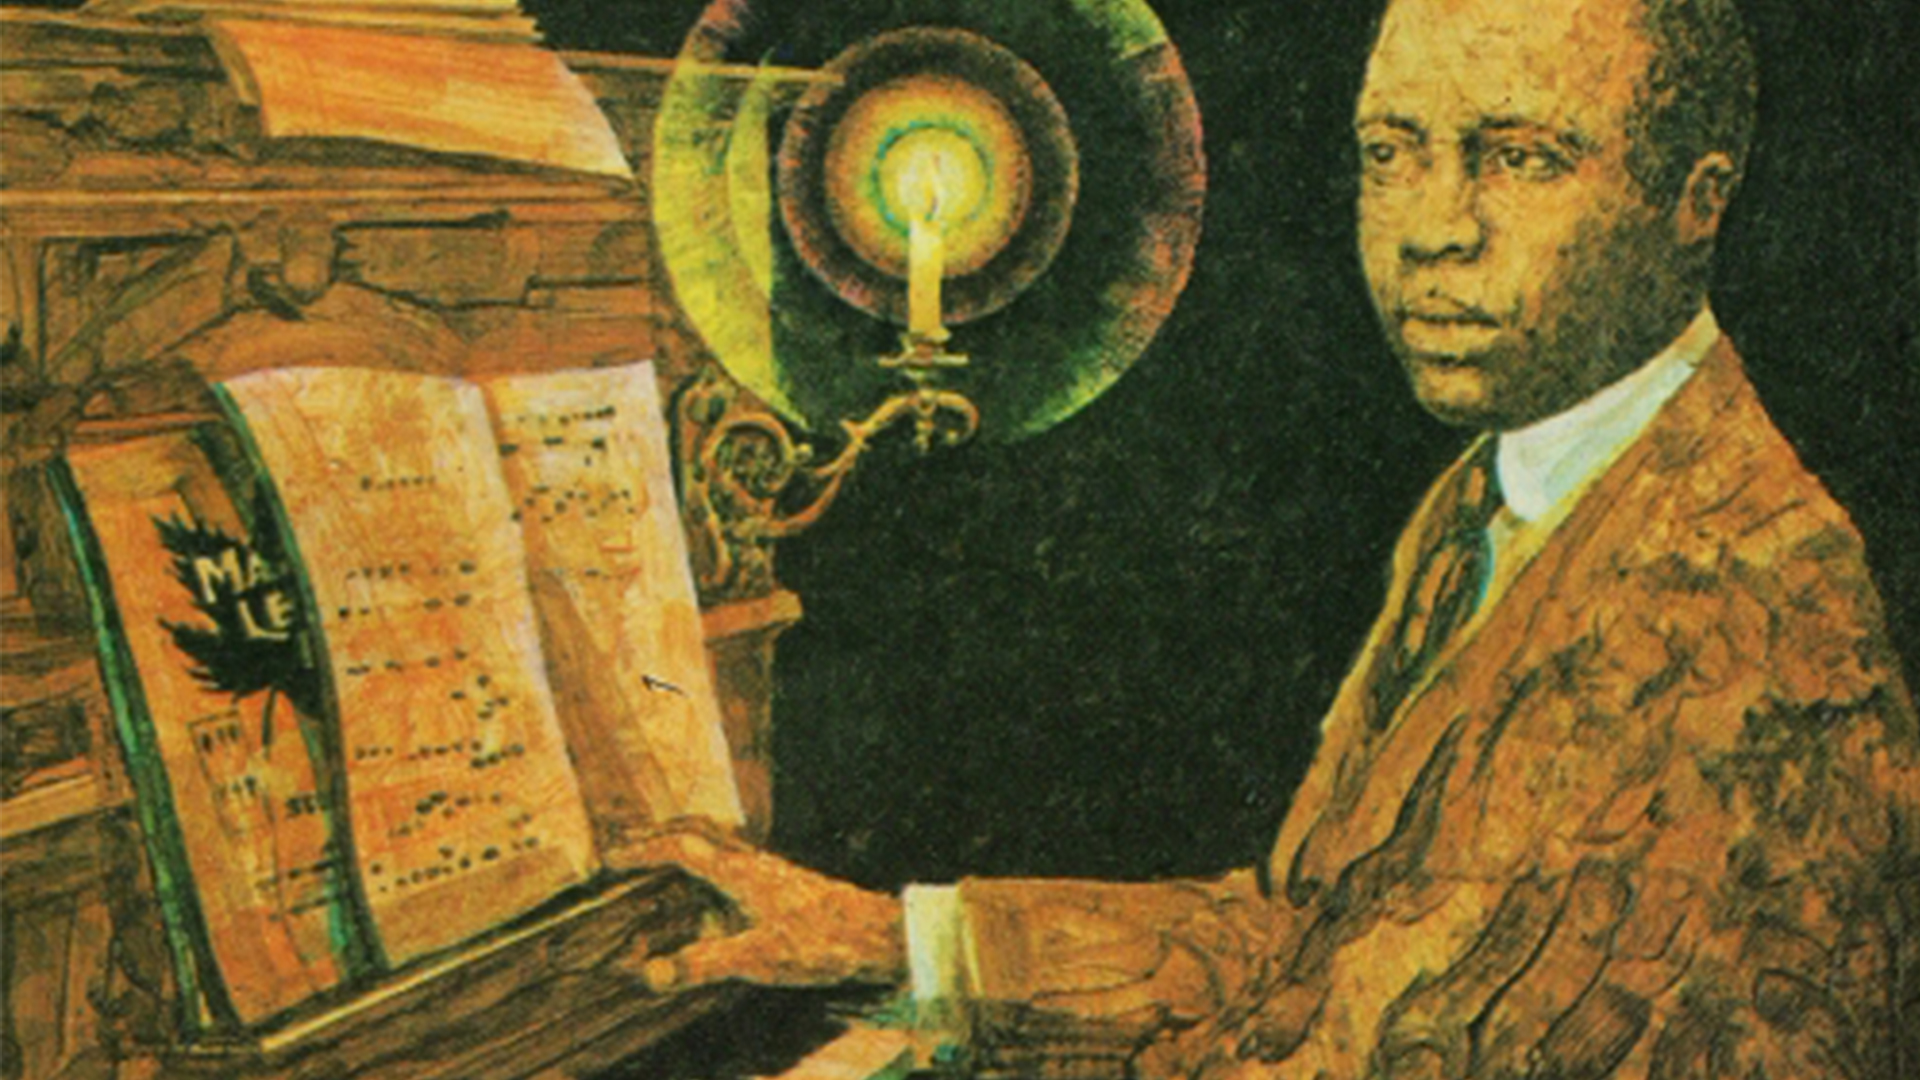 5 Days of Scott Joplin: Day 3, Original Rags & Scott Joplin Fun Facts